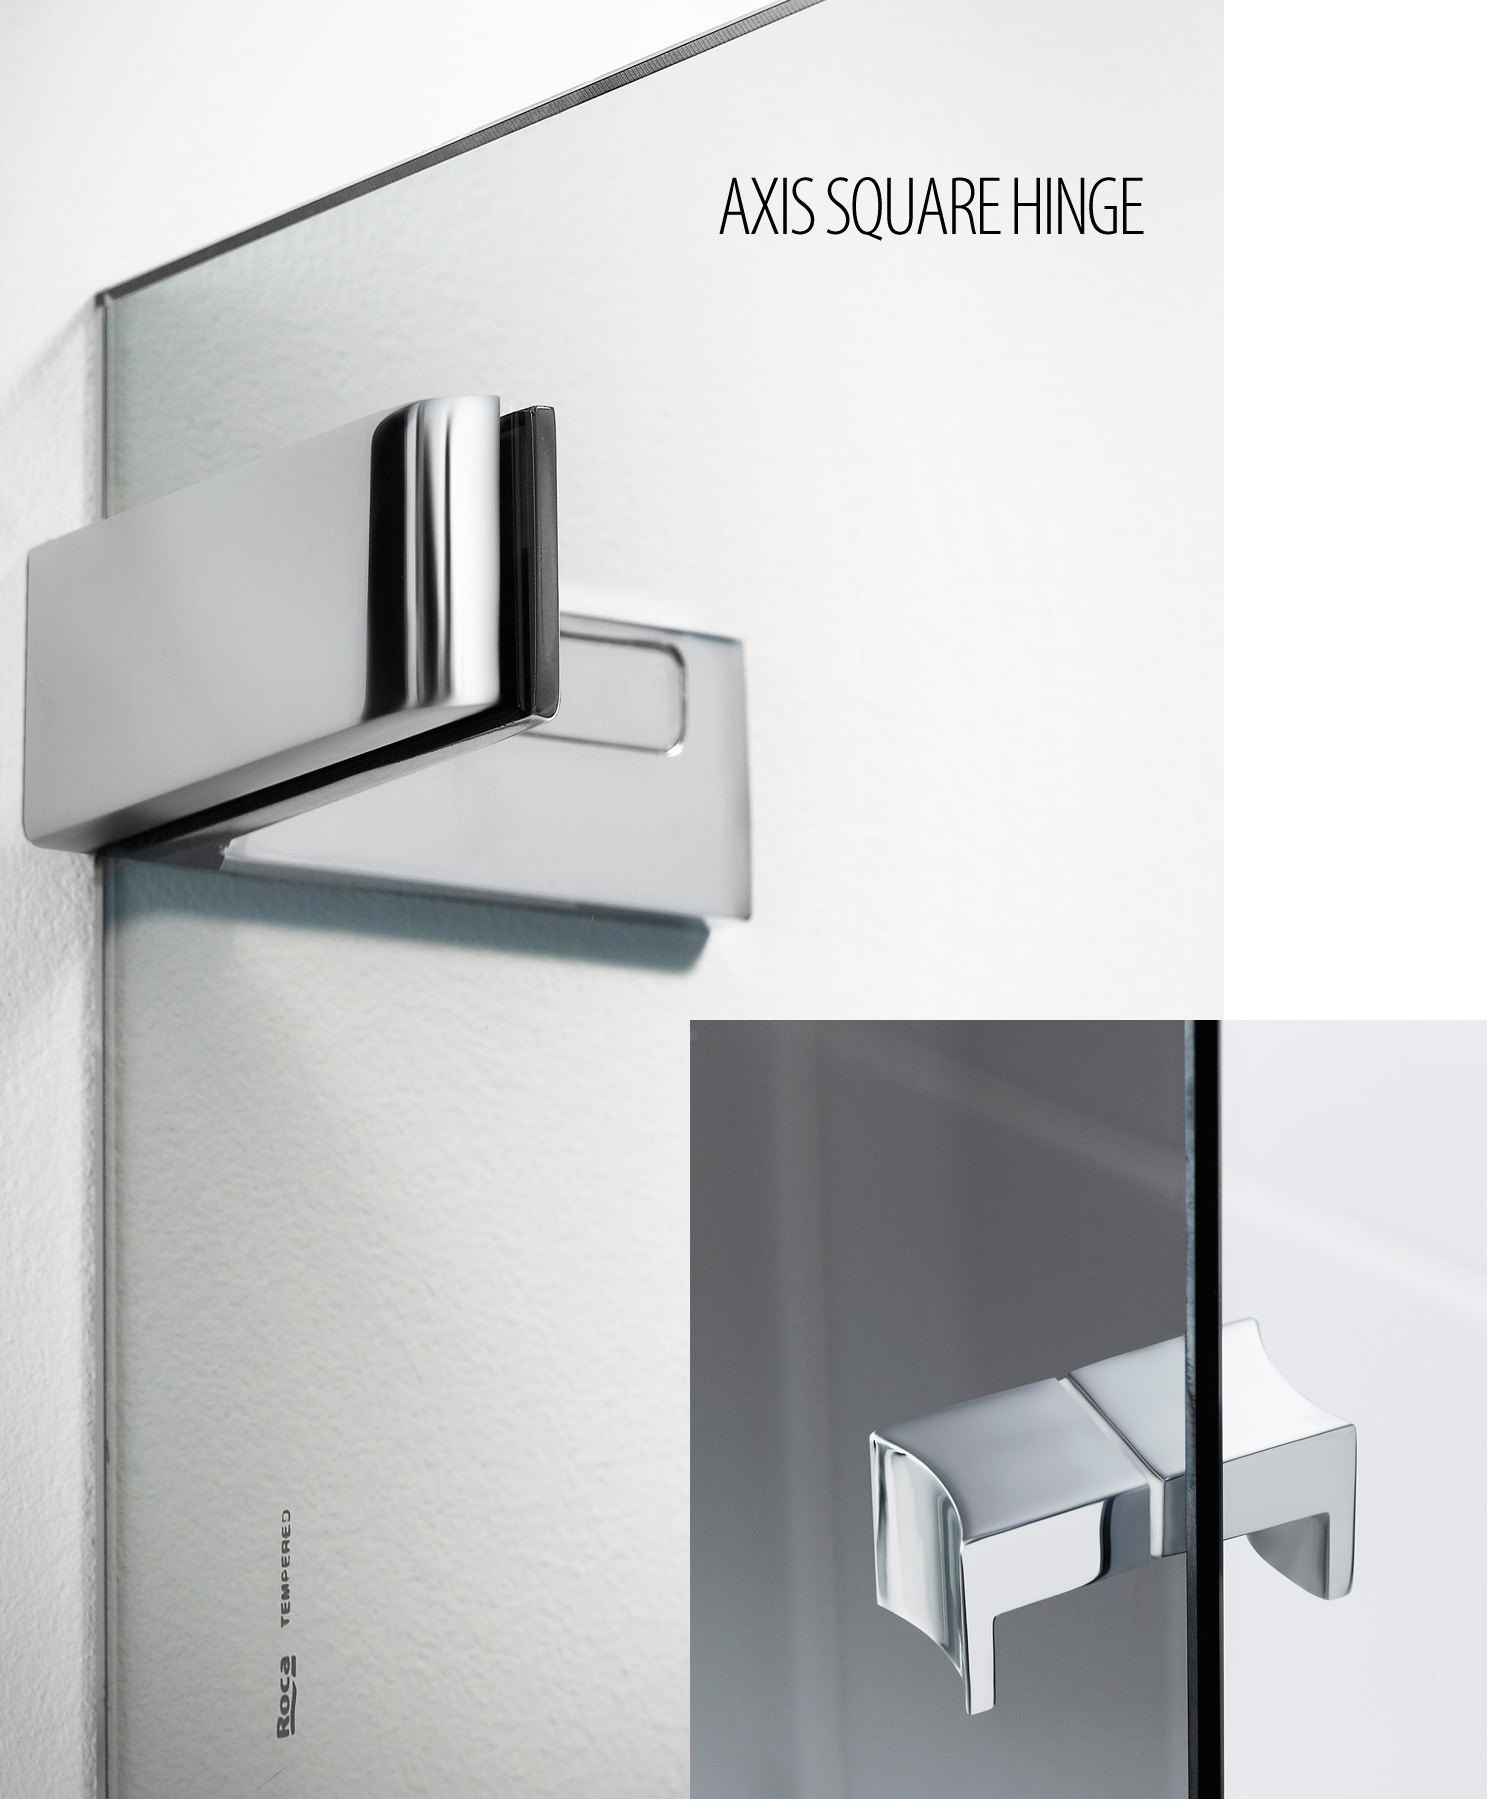 Roca Bathroom Accessories Roca Axis Pef 1200mm Lh Pivot Door With Arco Hinges For Recess